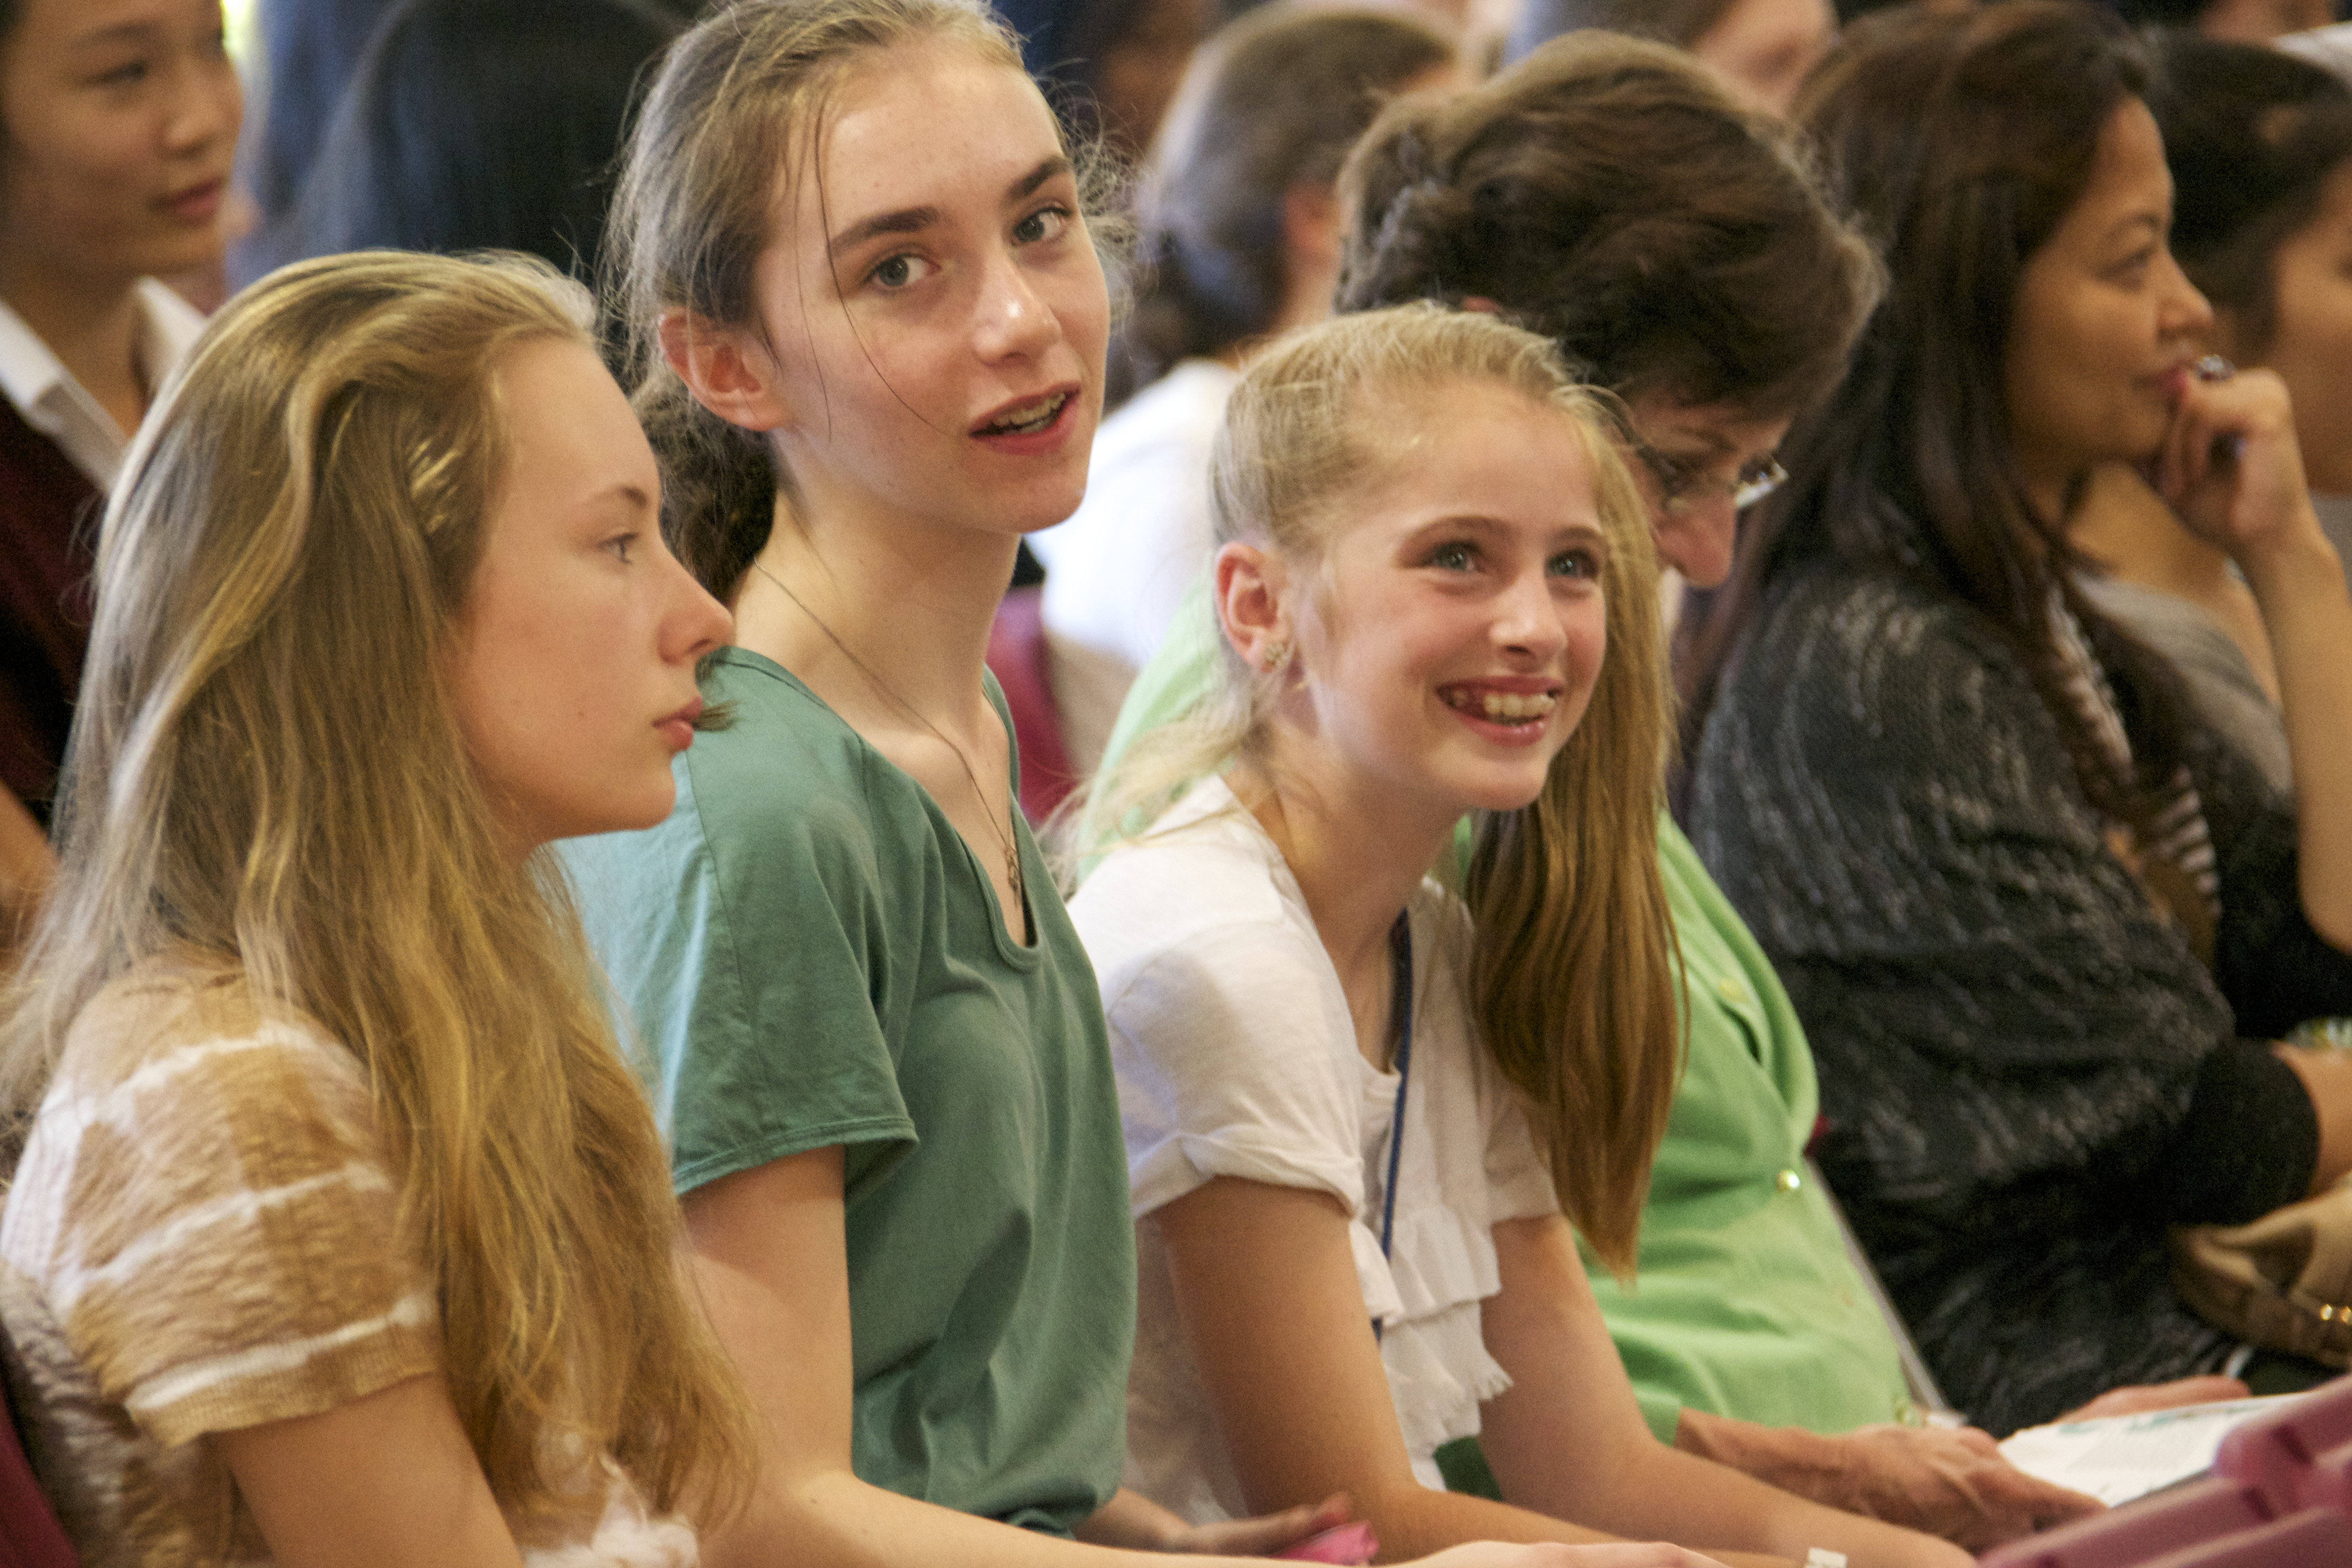 Young women enjoying the conference